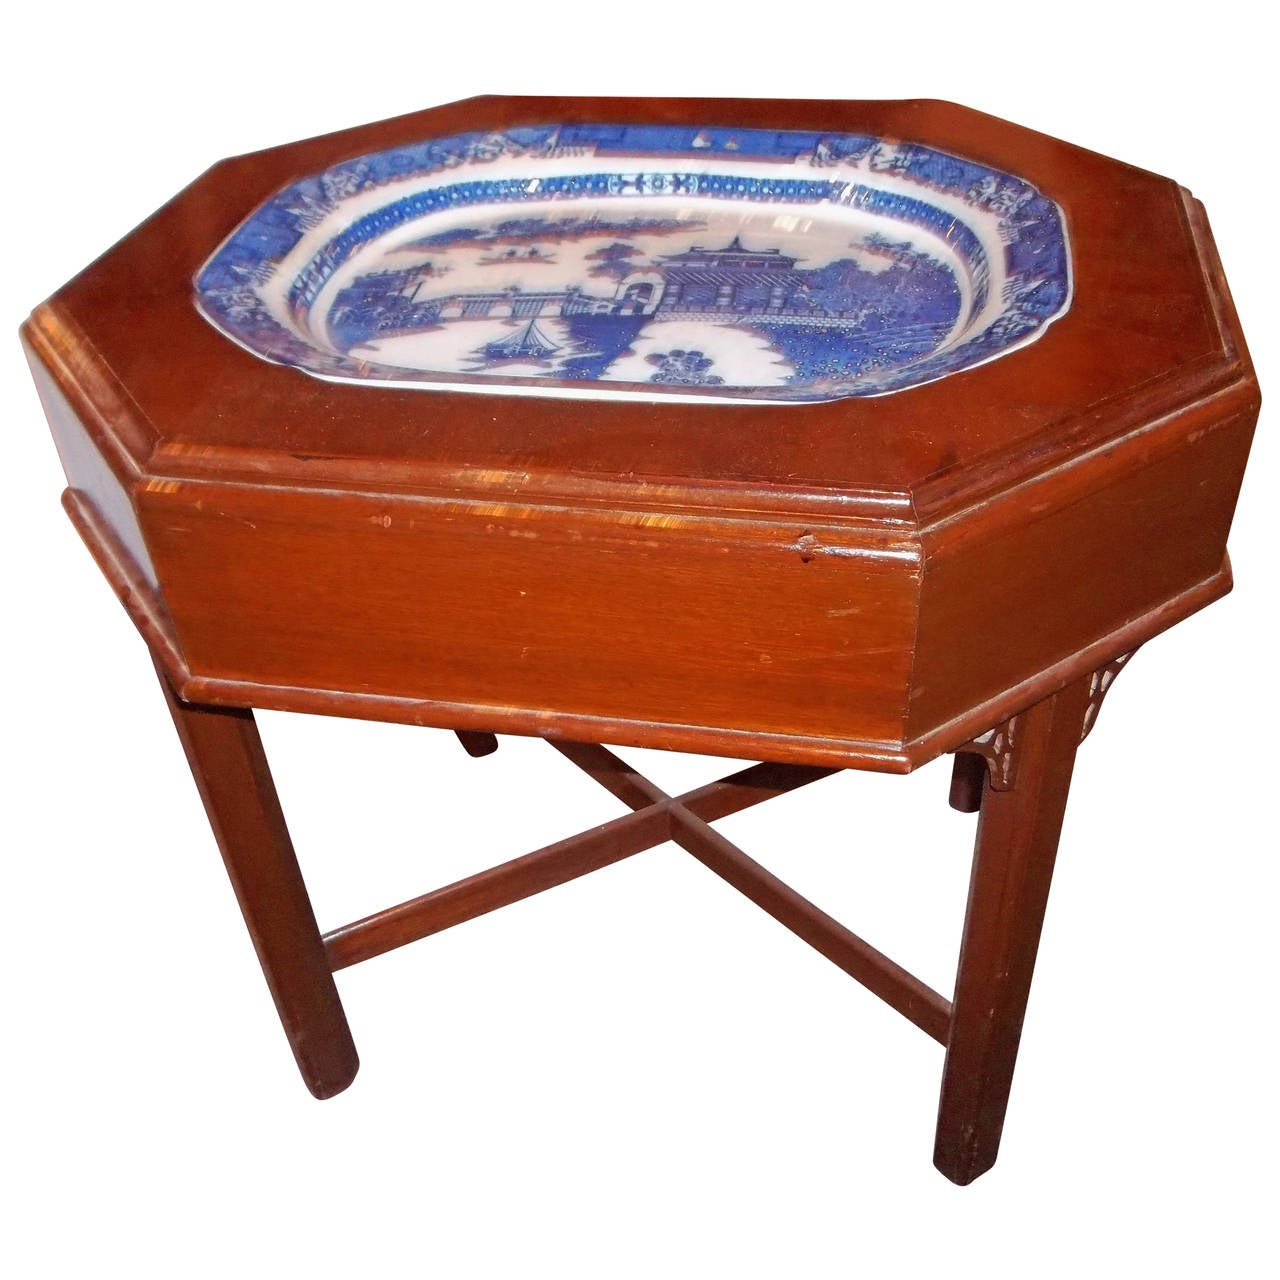 Mahogany Side Or Cocktail Table With Chinese Export Platter At 1stdibs